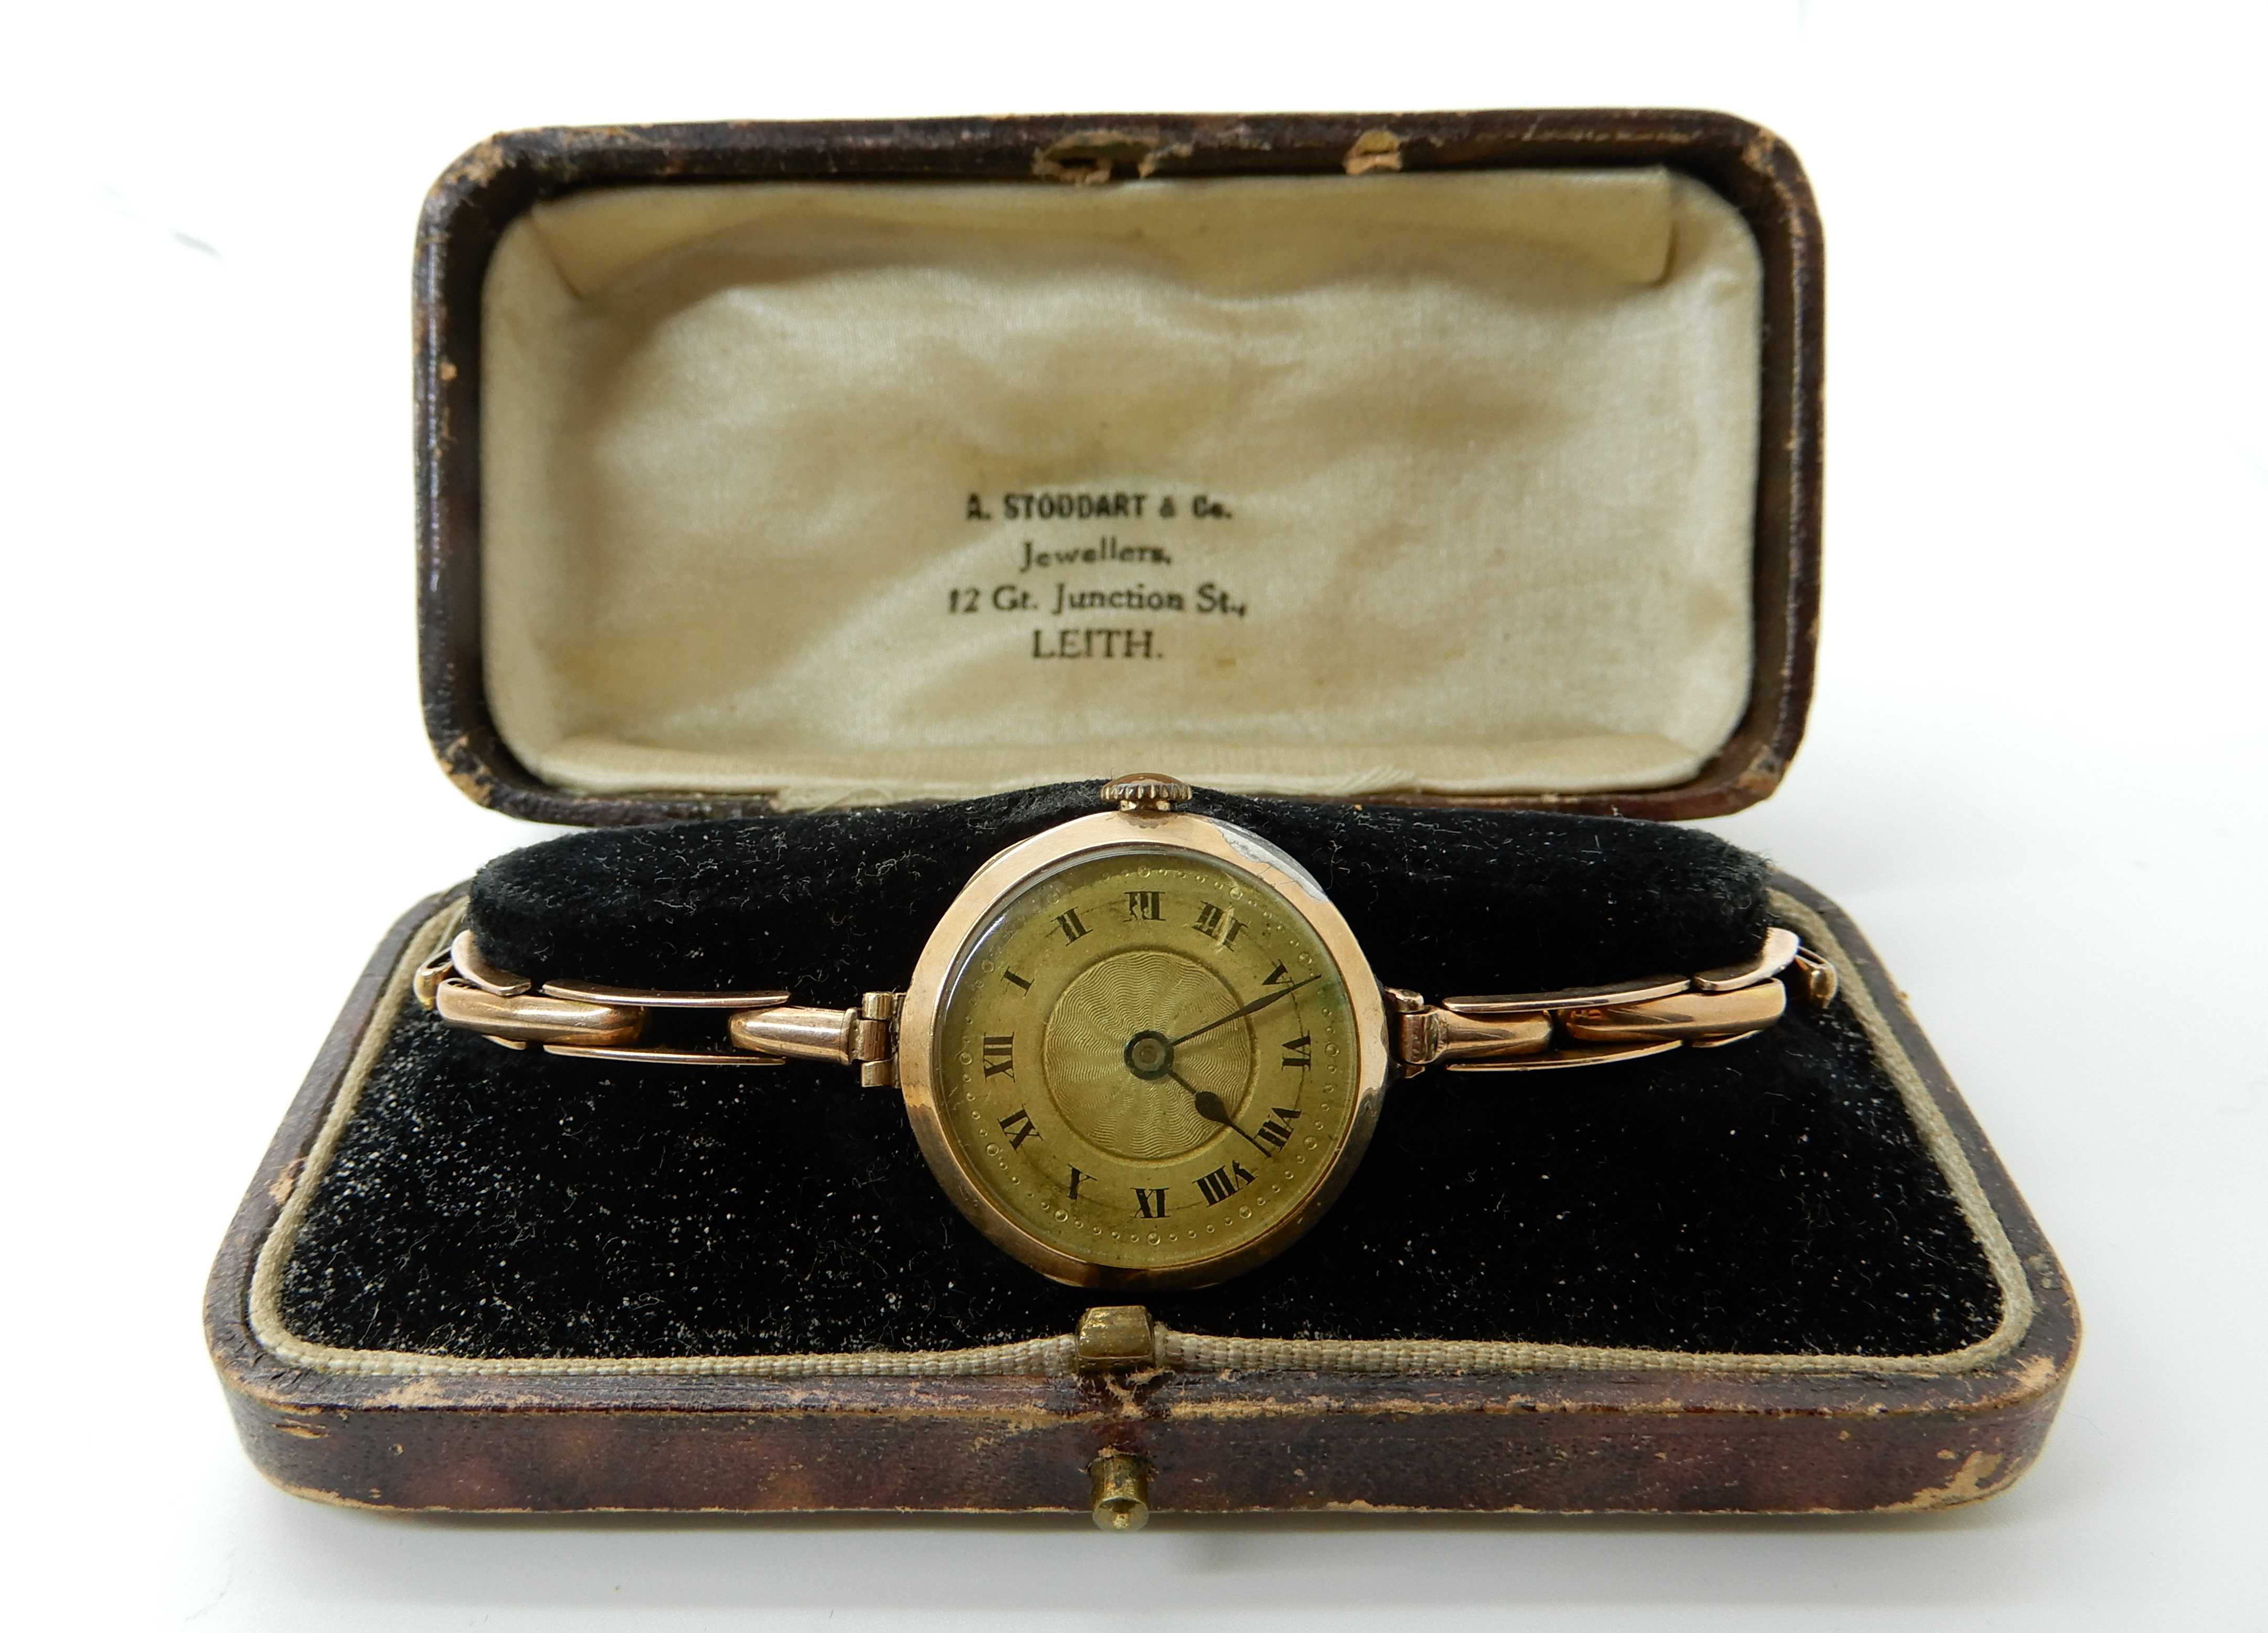 Lot 45 - A 9ct gold ladies vintage watch, weight including mechanism 17.3gms Condition Report: Available upon